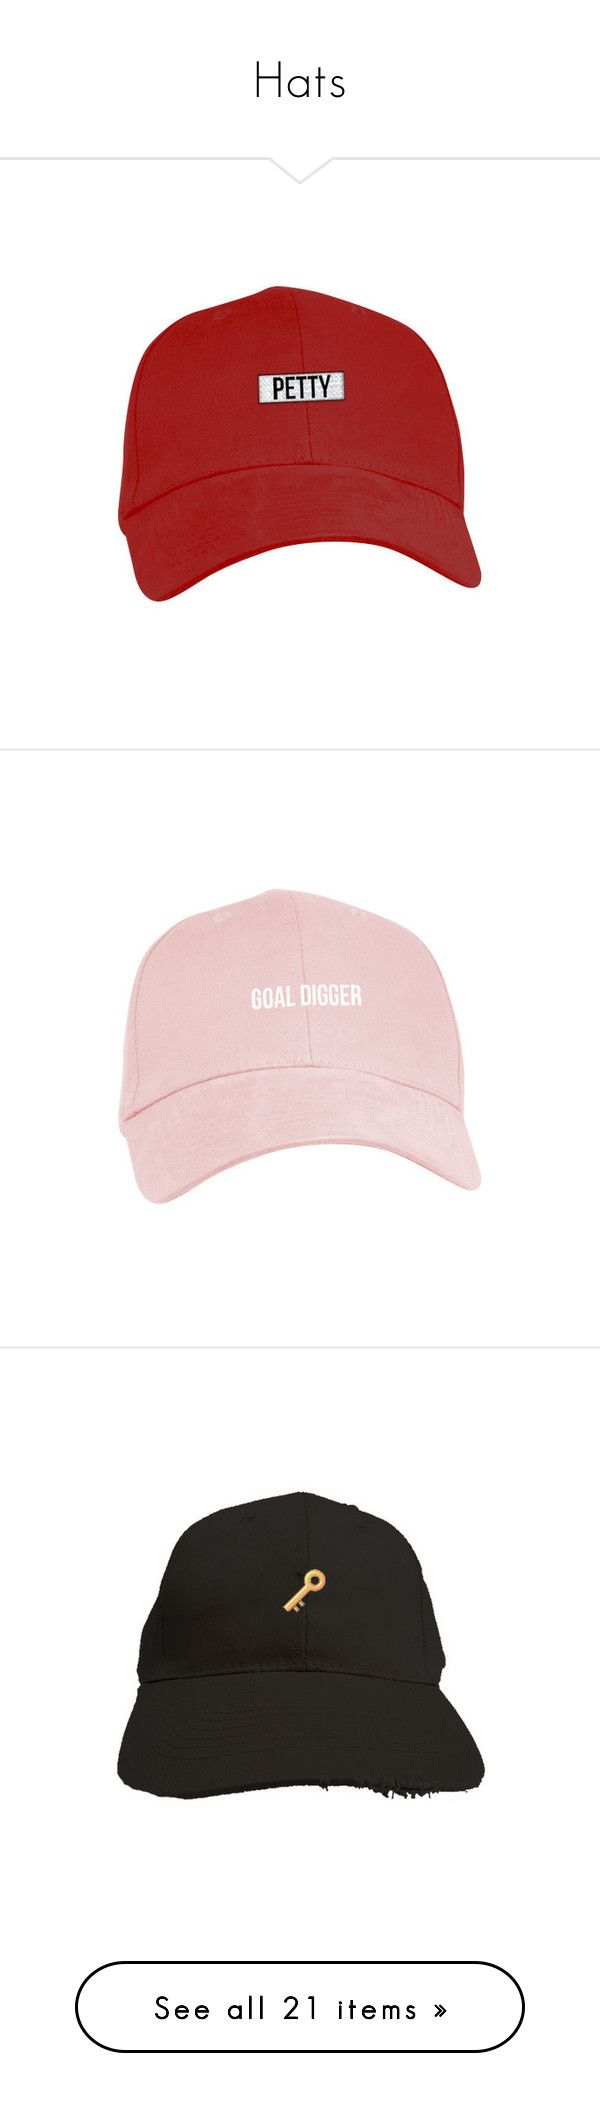 """""""Hats"""" by lexiesocrazy ❤ liked on Polyvore featuring accessories, hats, crown hat, baseball hats, six panel hat, 6 panel hat, embroidery hats, distressed baseball cap, embroidered baseball hats and distressed hat"""